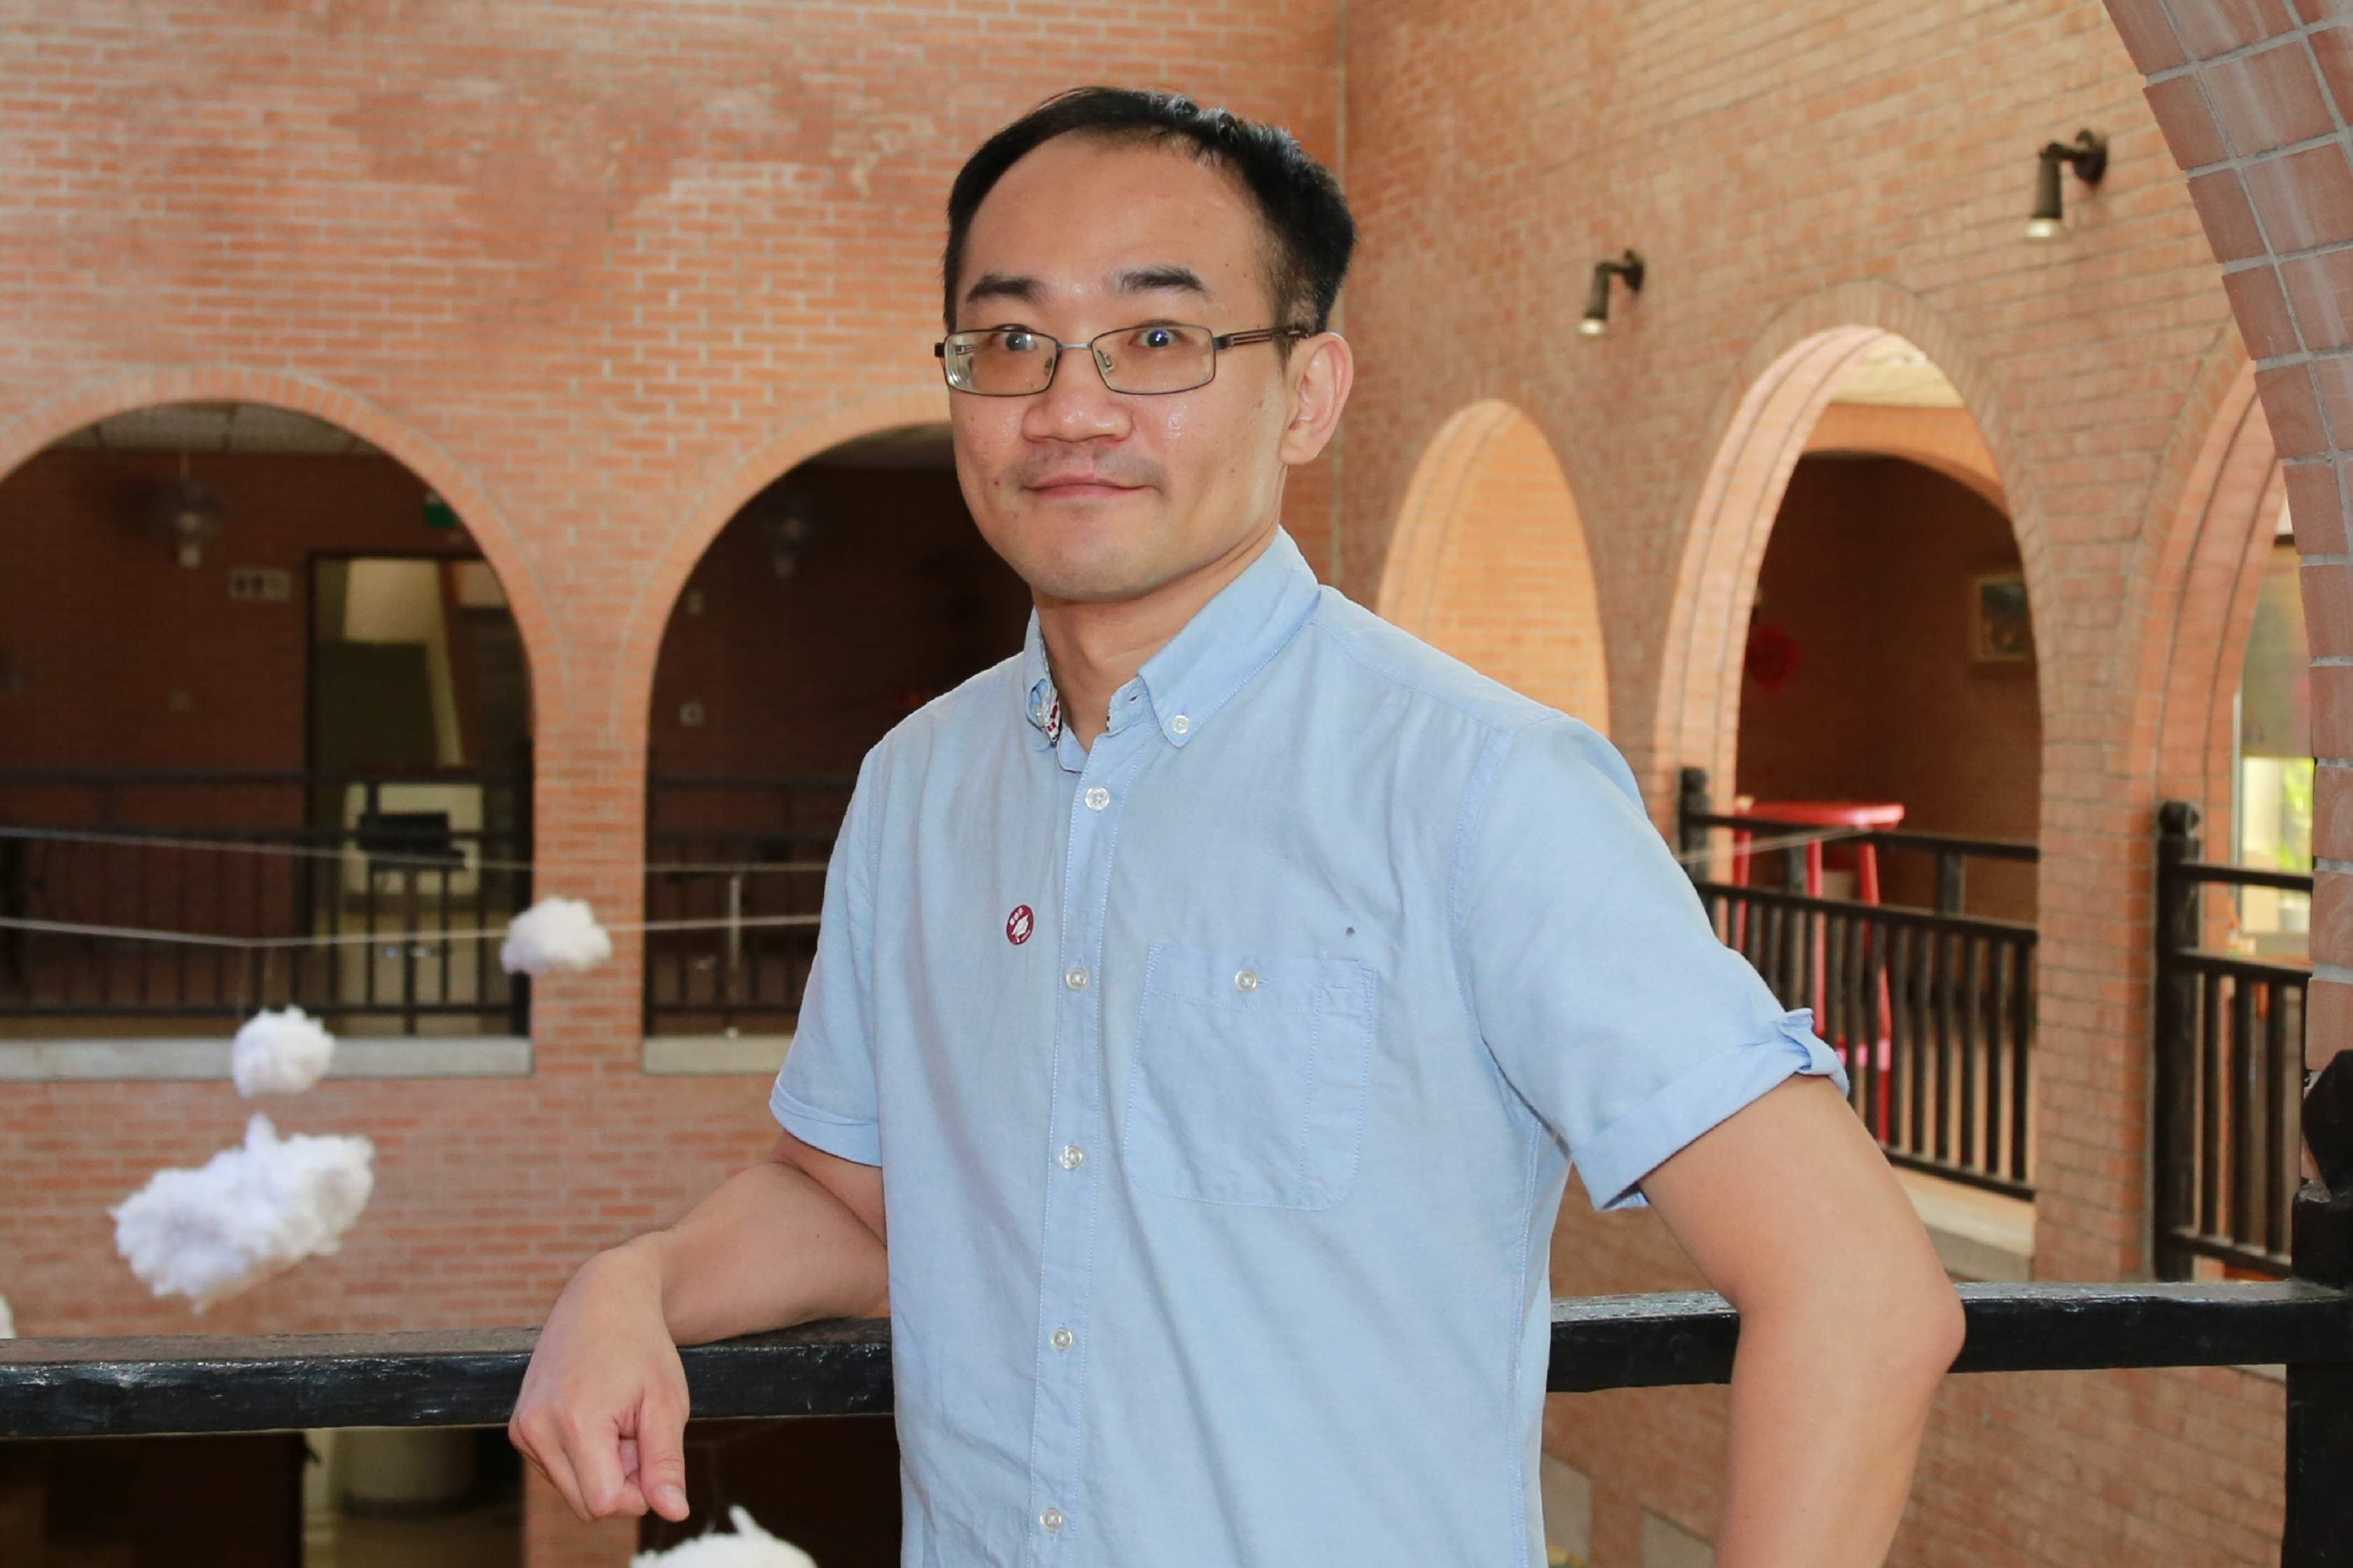 Assistant Professor Shin-Ming Huang with his international research team published papers in 3 top international journals in the past 1.5 years